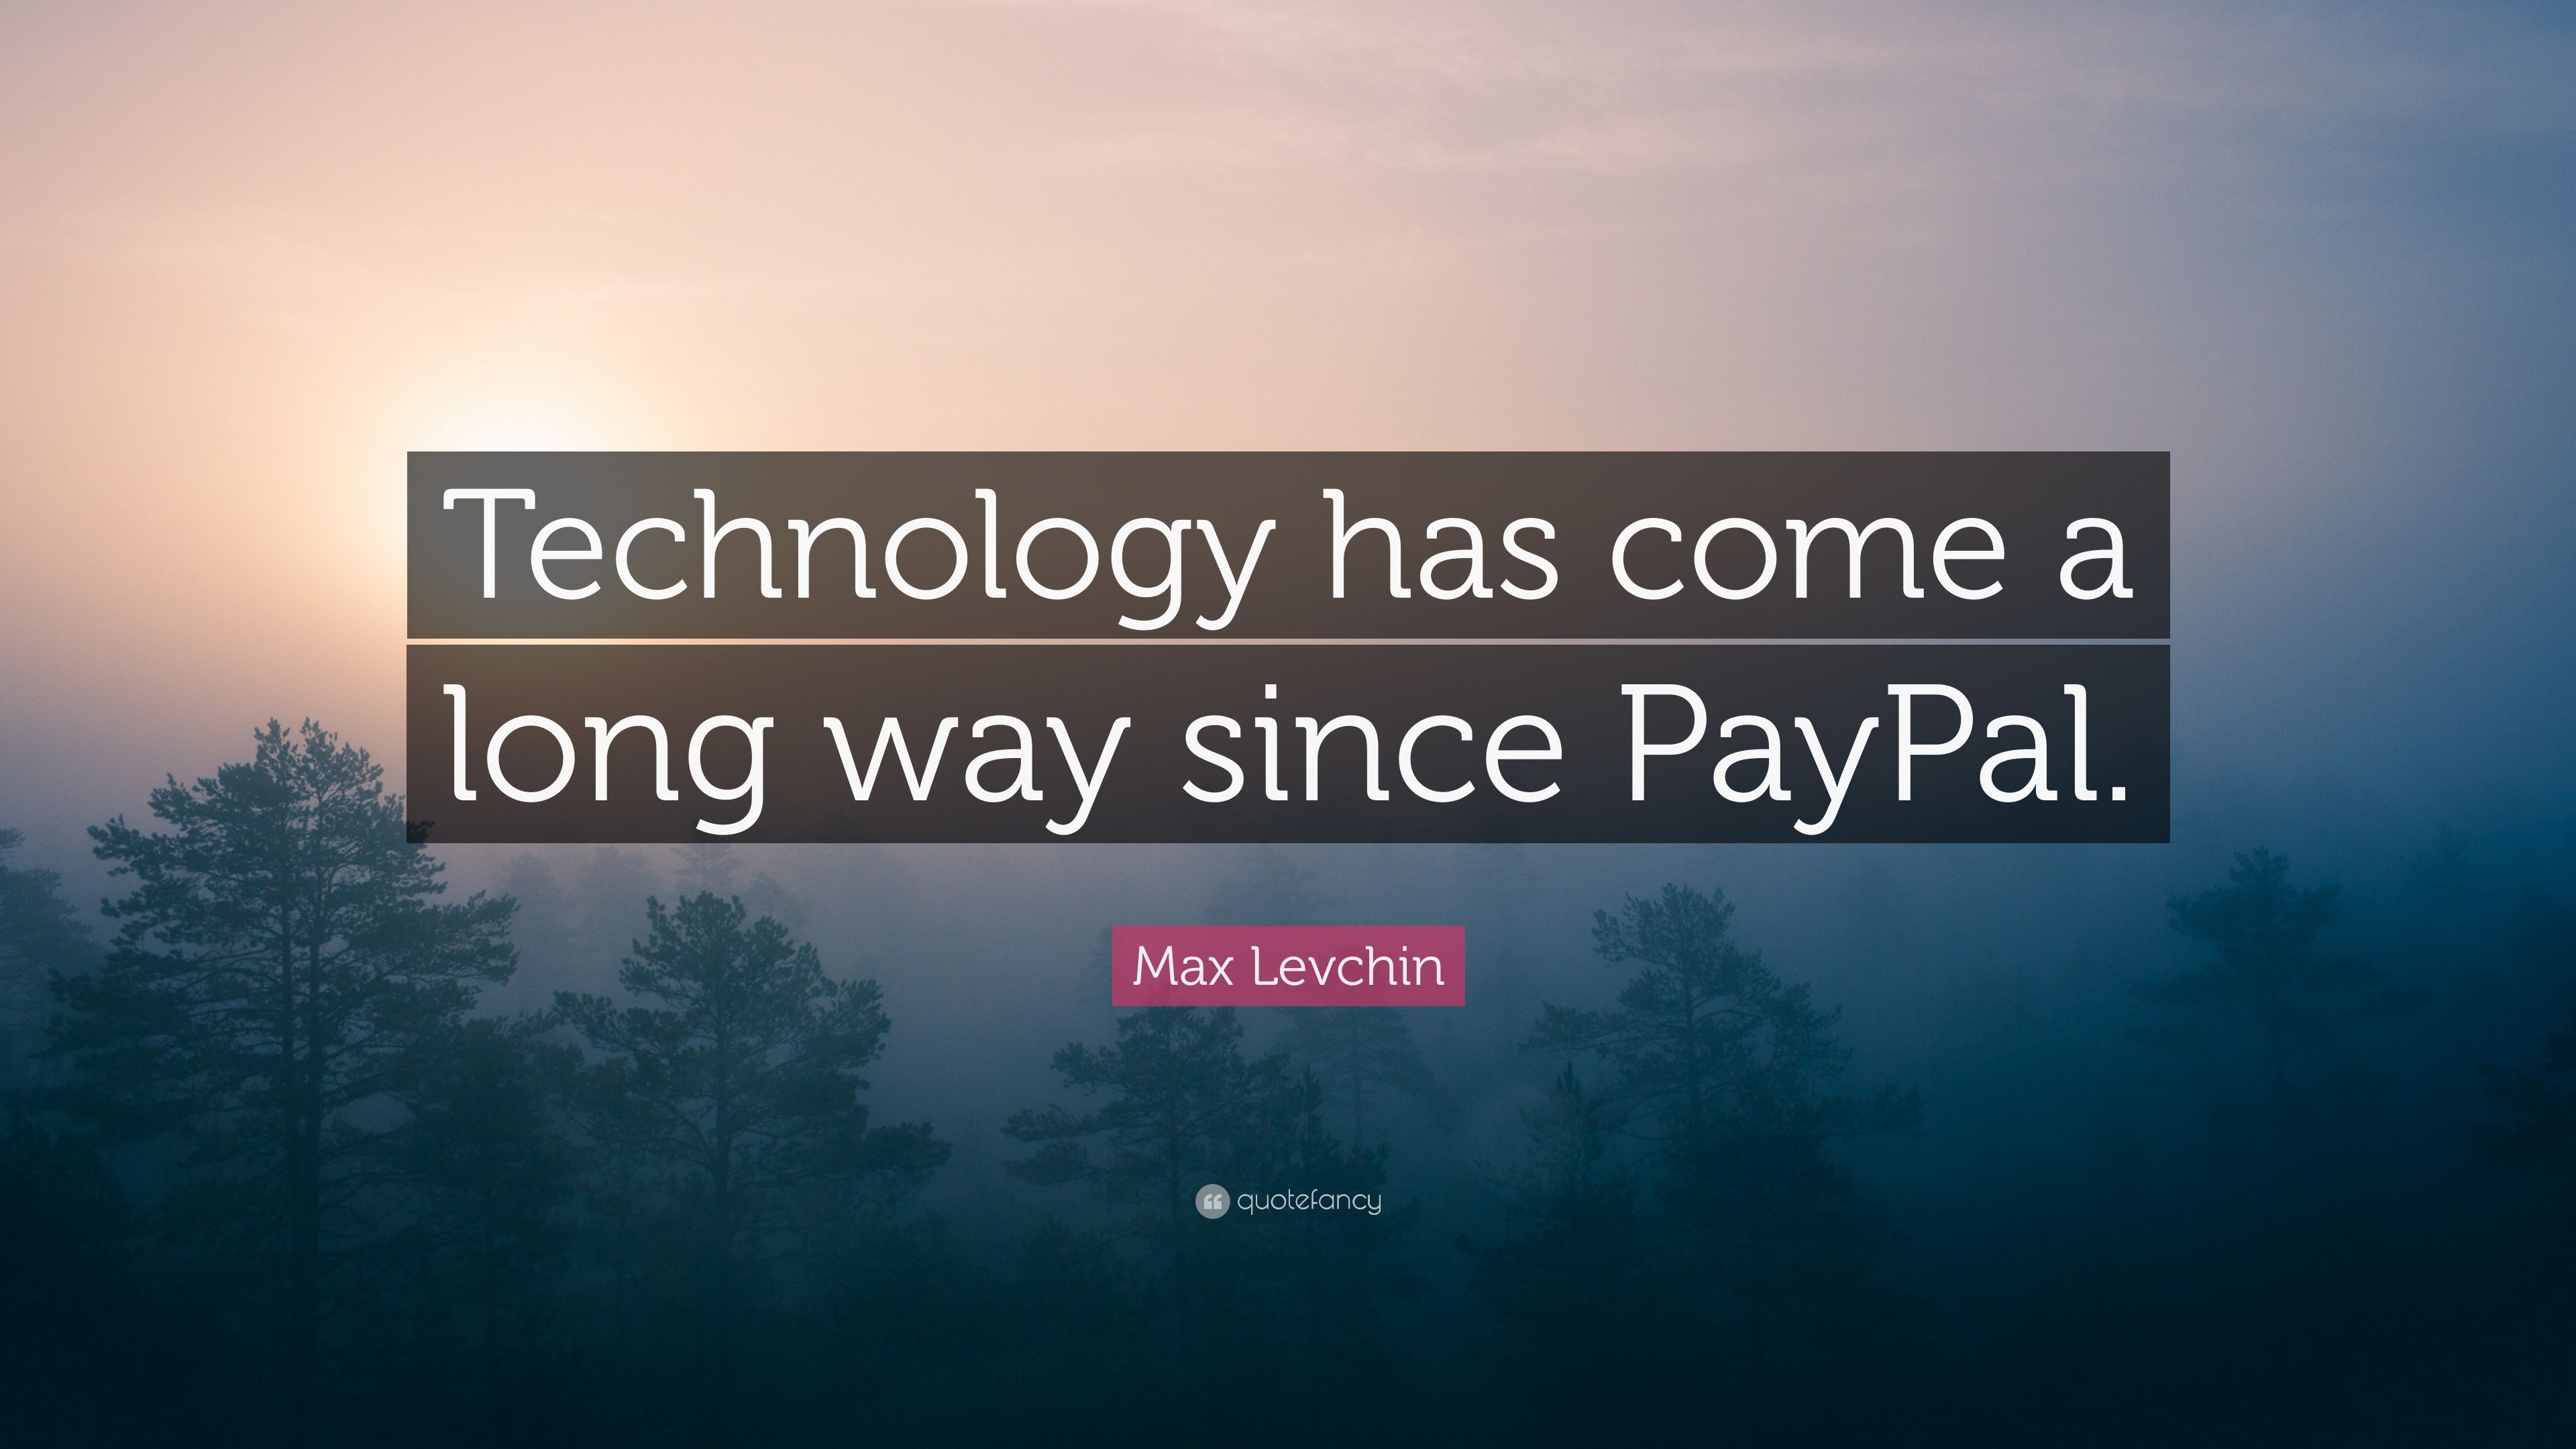 max levchin quote technology has come a long way since paypal